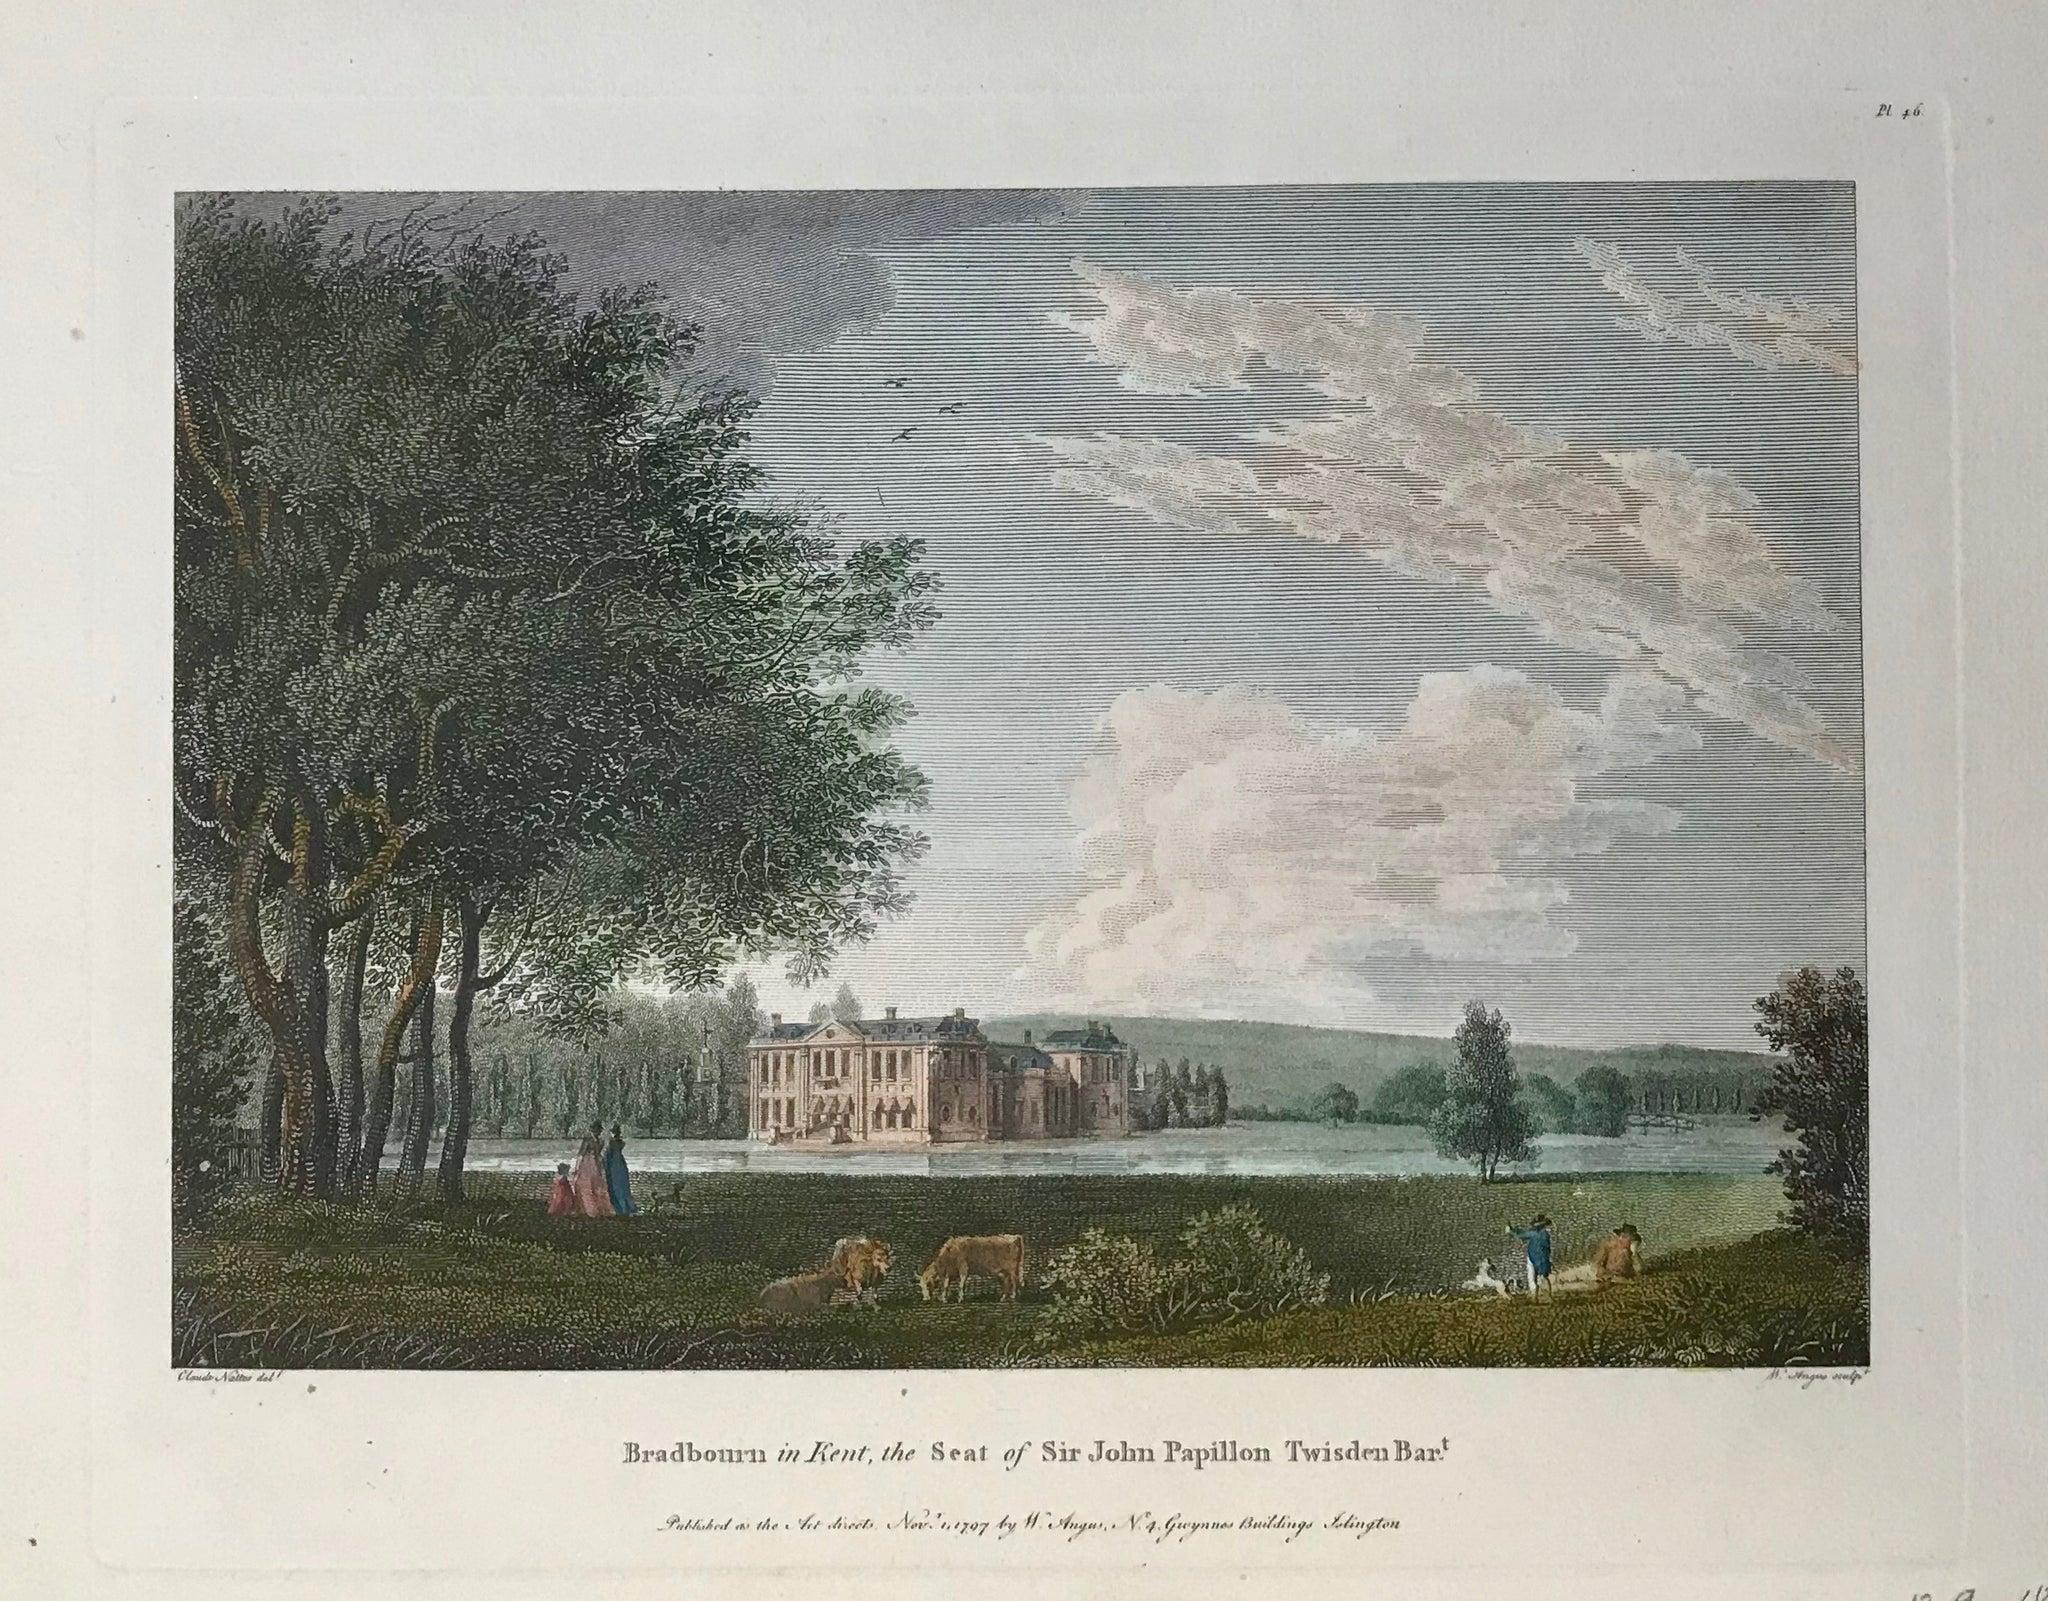 "Bradbourn in Kent, the Seat of Sir John Papillon Twisden Bart.  By W. angus after Claude Nattes, dated 1797  12.9 x 18.5 cm (5.1 x 7.3 "")  Castles, Landscapes and Estates of England and Scotland"